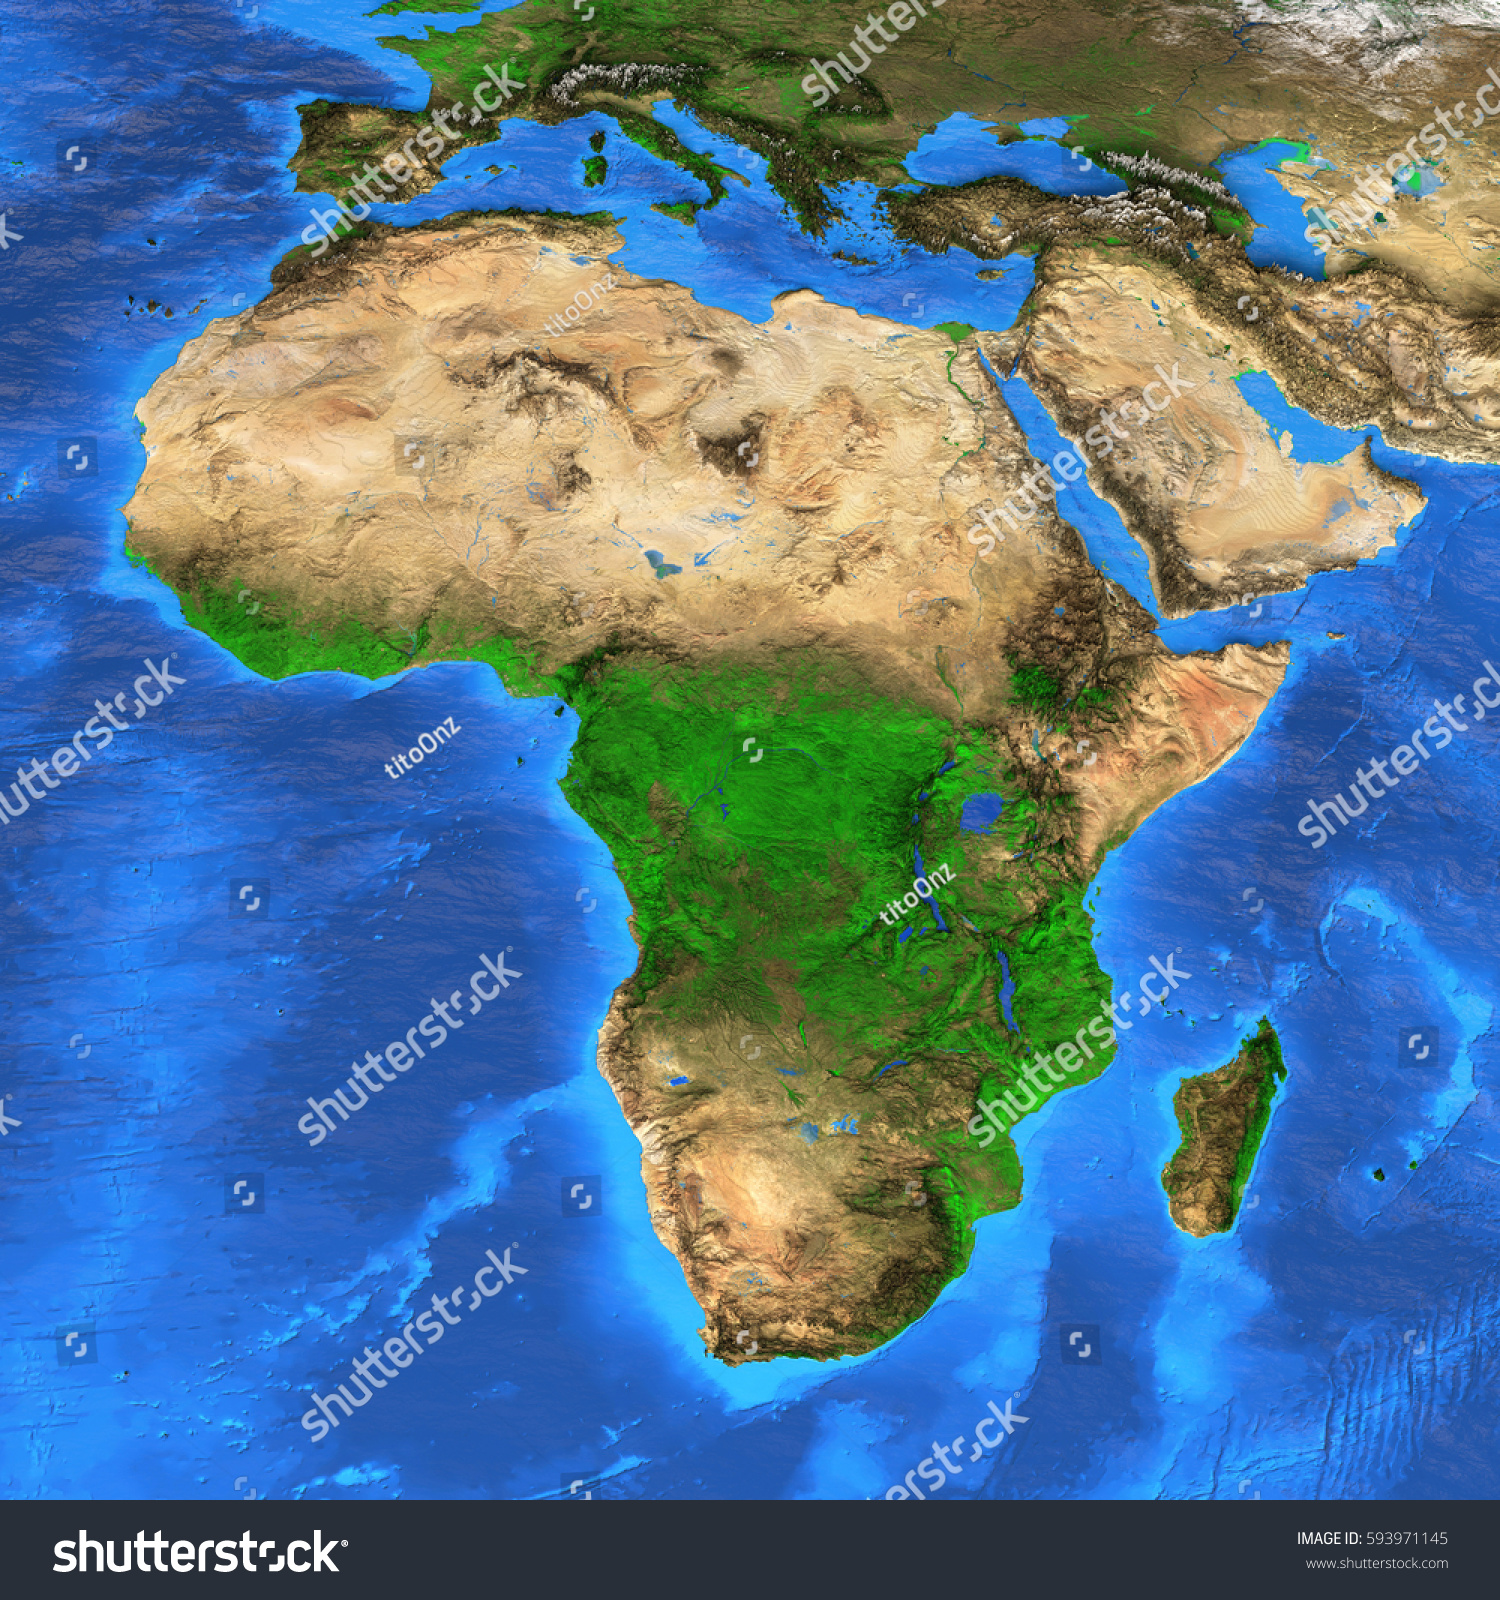 Detailed Satellite View Earth Landforms Africa Stock